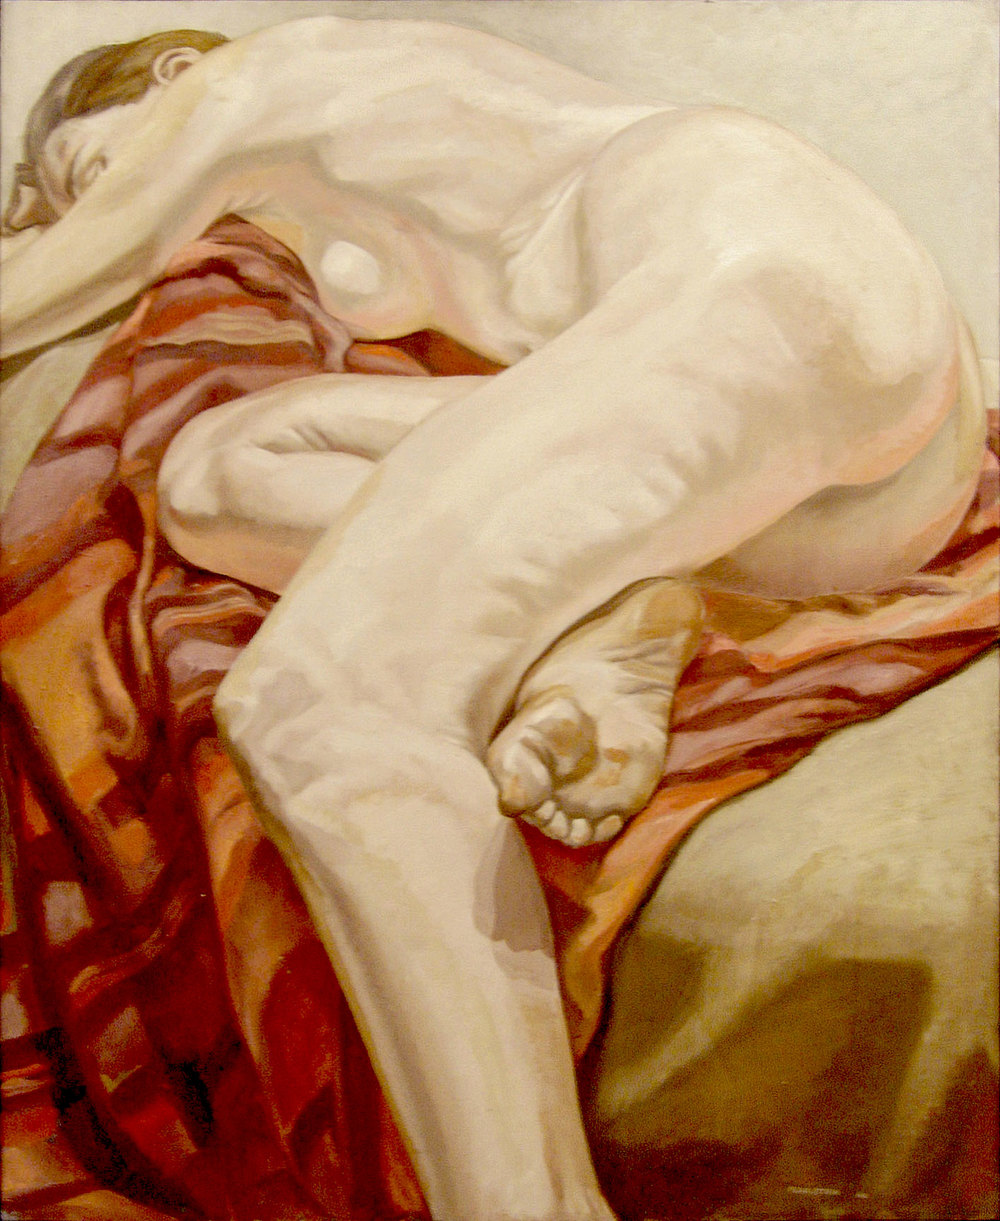 Reclining Model on Striped Cloth , 1966 Oil on canvas 44 x 36 inches